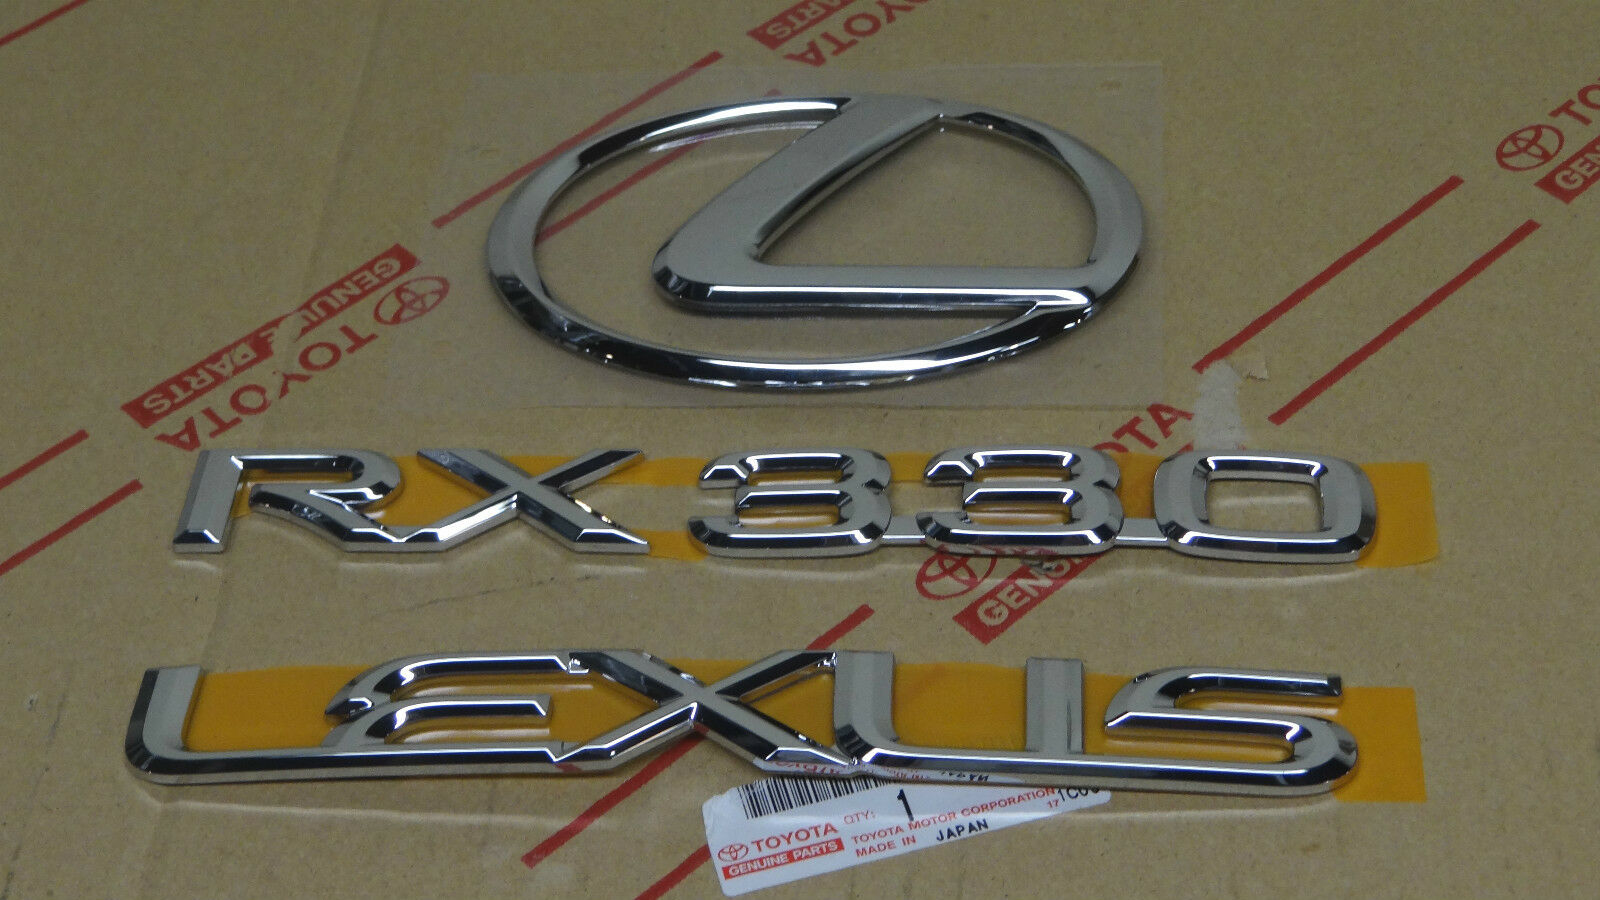 Buy 04 06 New Lexus Rx330 Rear Chrome Trunk Emblem Kit